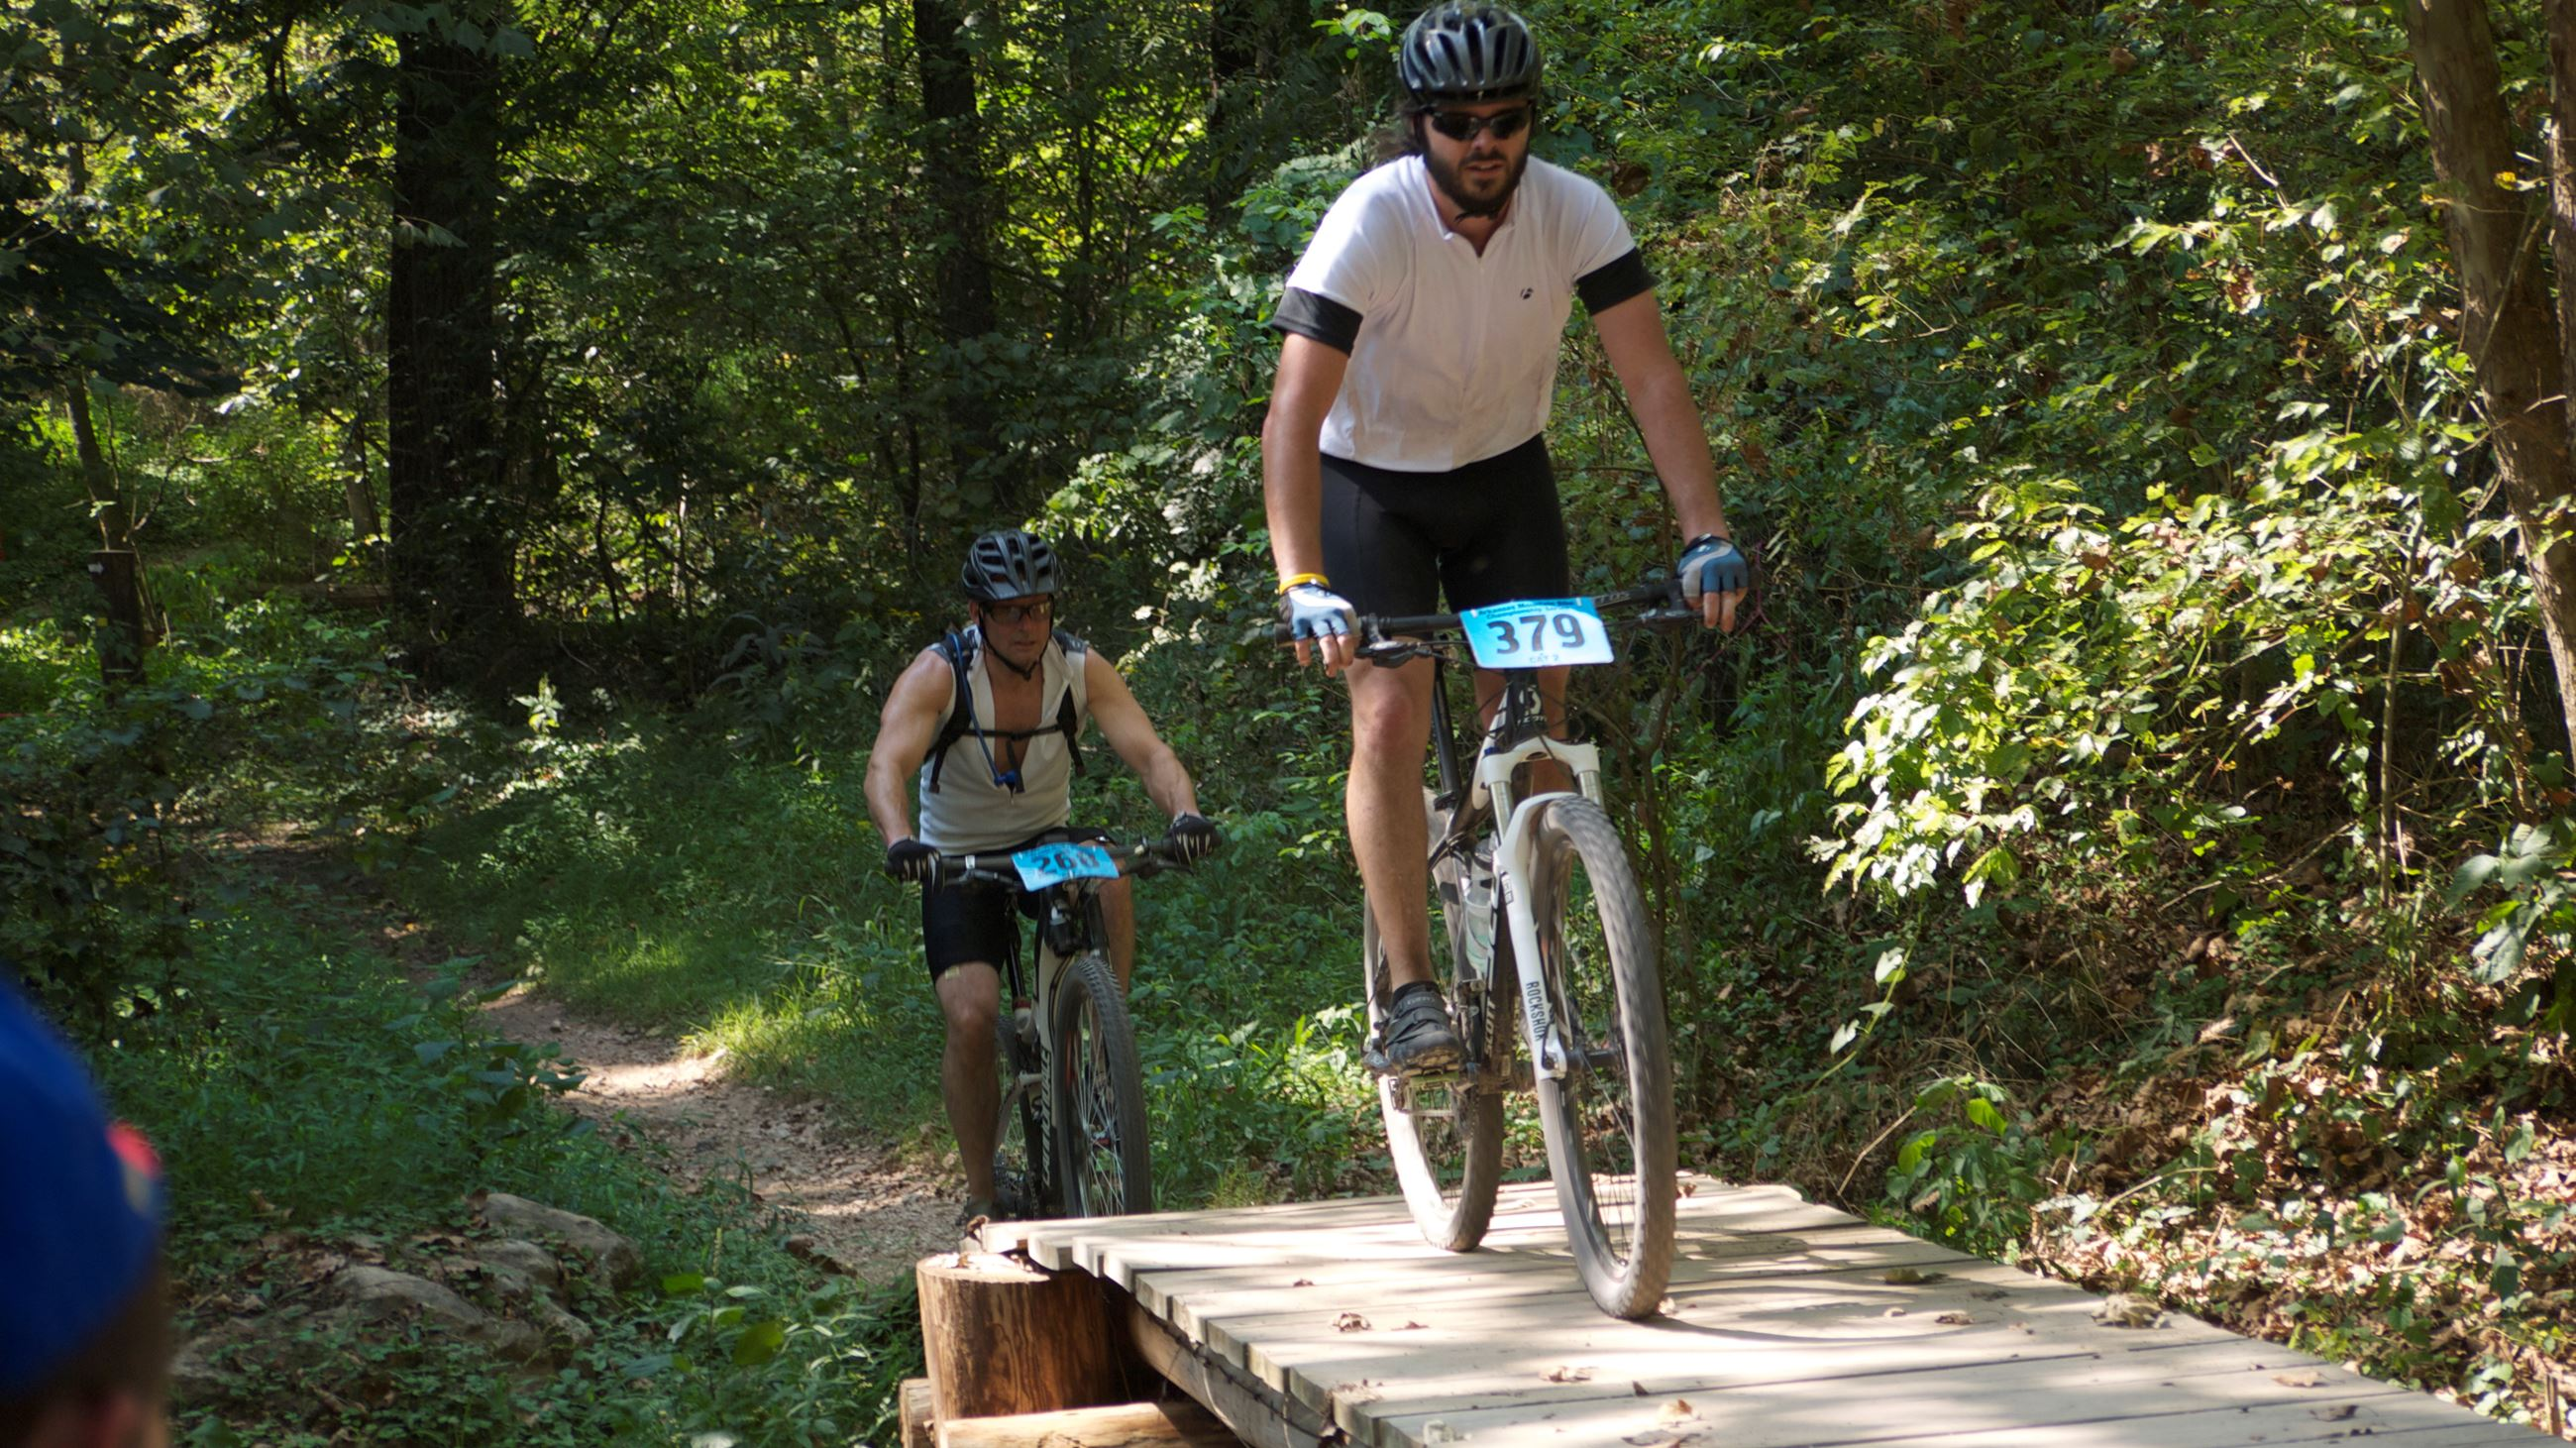 Slaughter Pen Mountain Bike Park Image of two bikers on wooden trail